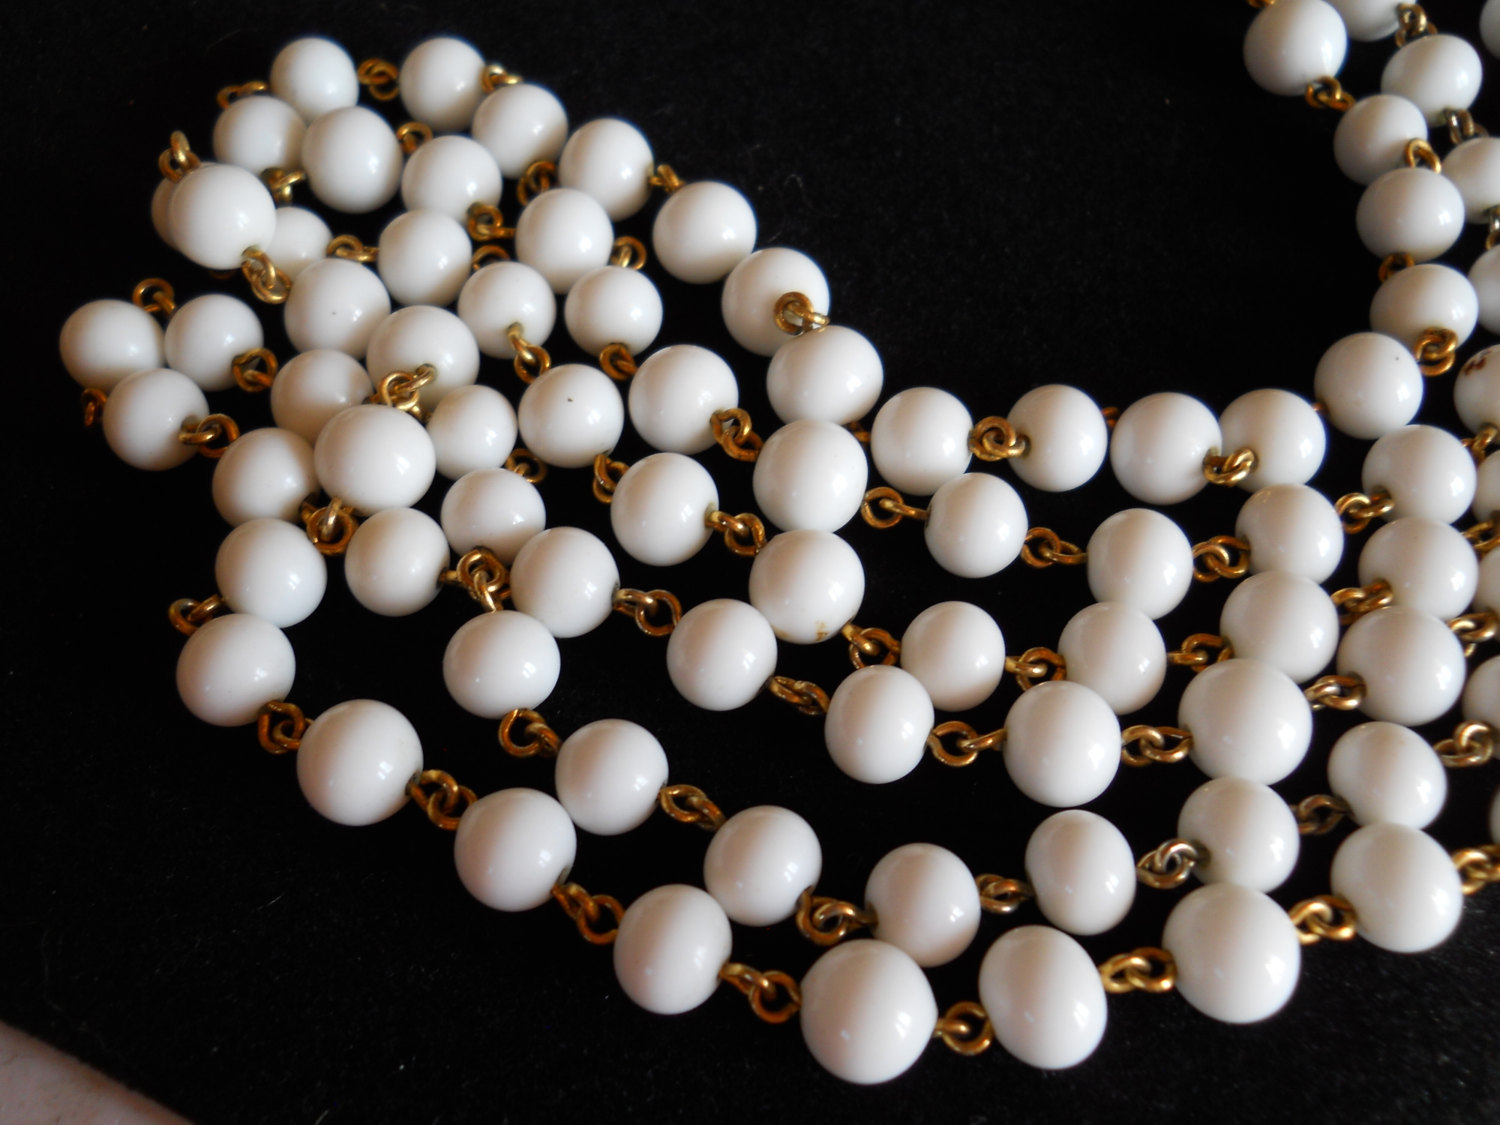 Endless Strand Necklace Milk Glass Bead and Gold Tone Metal Vintage image 4